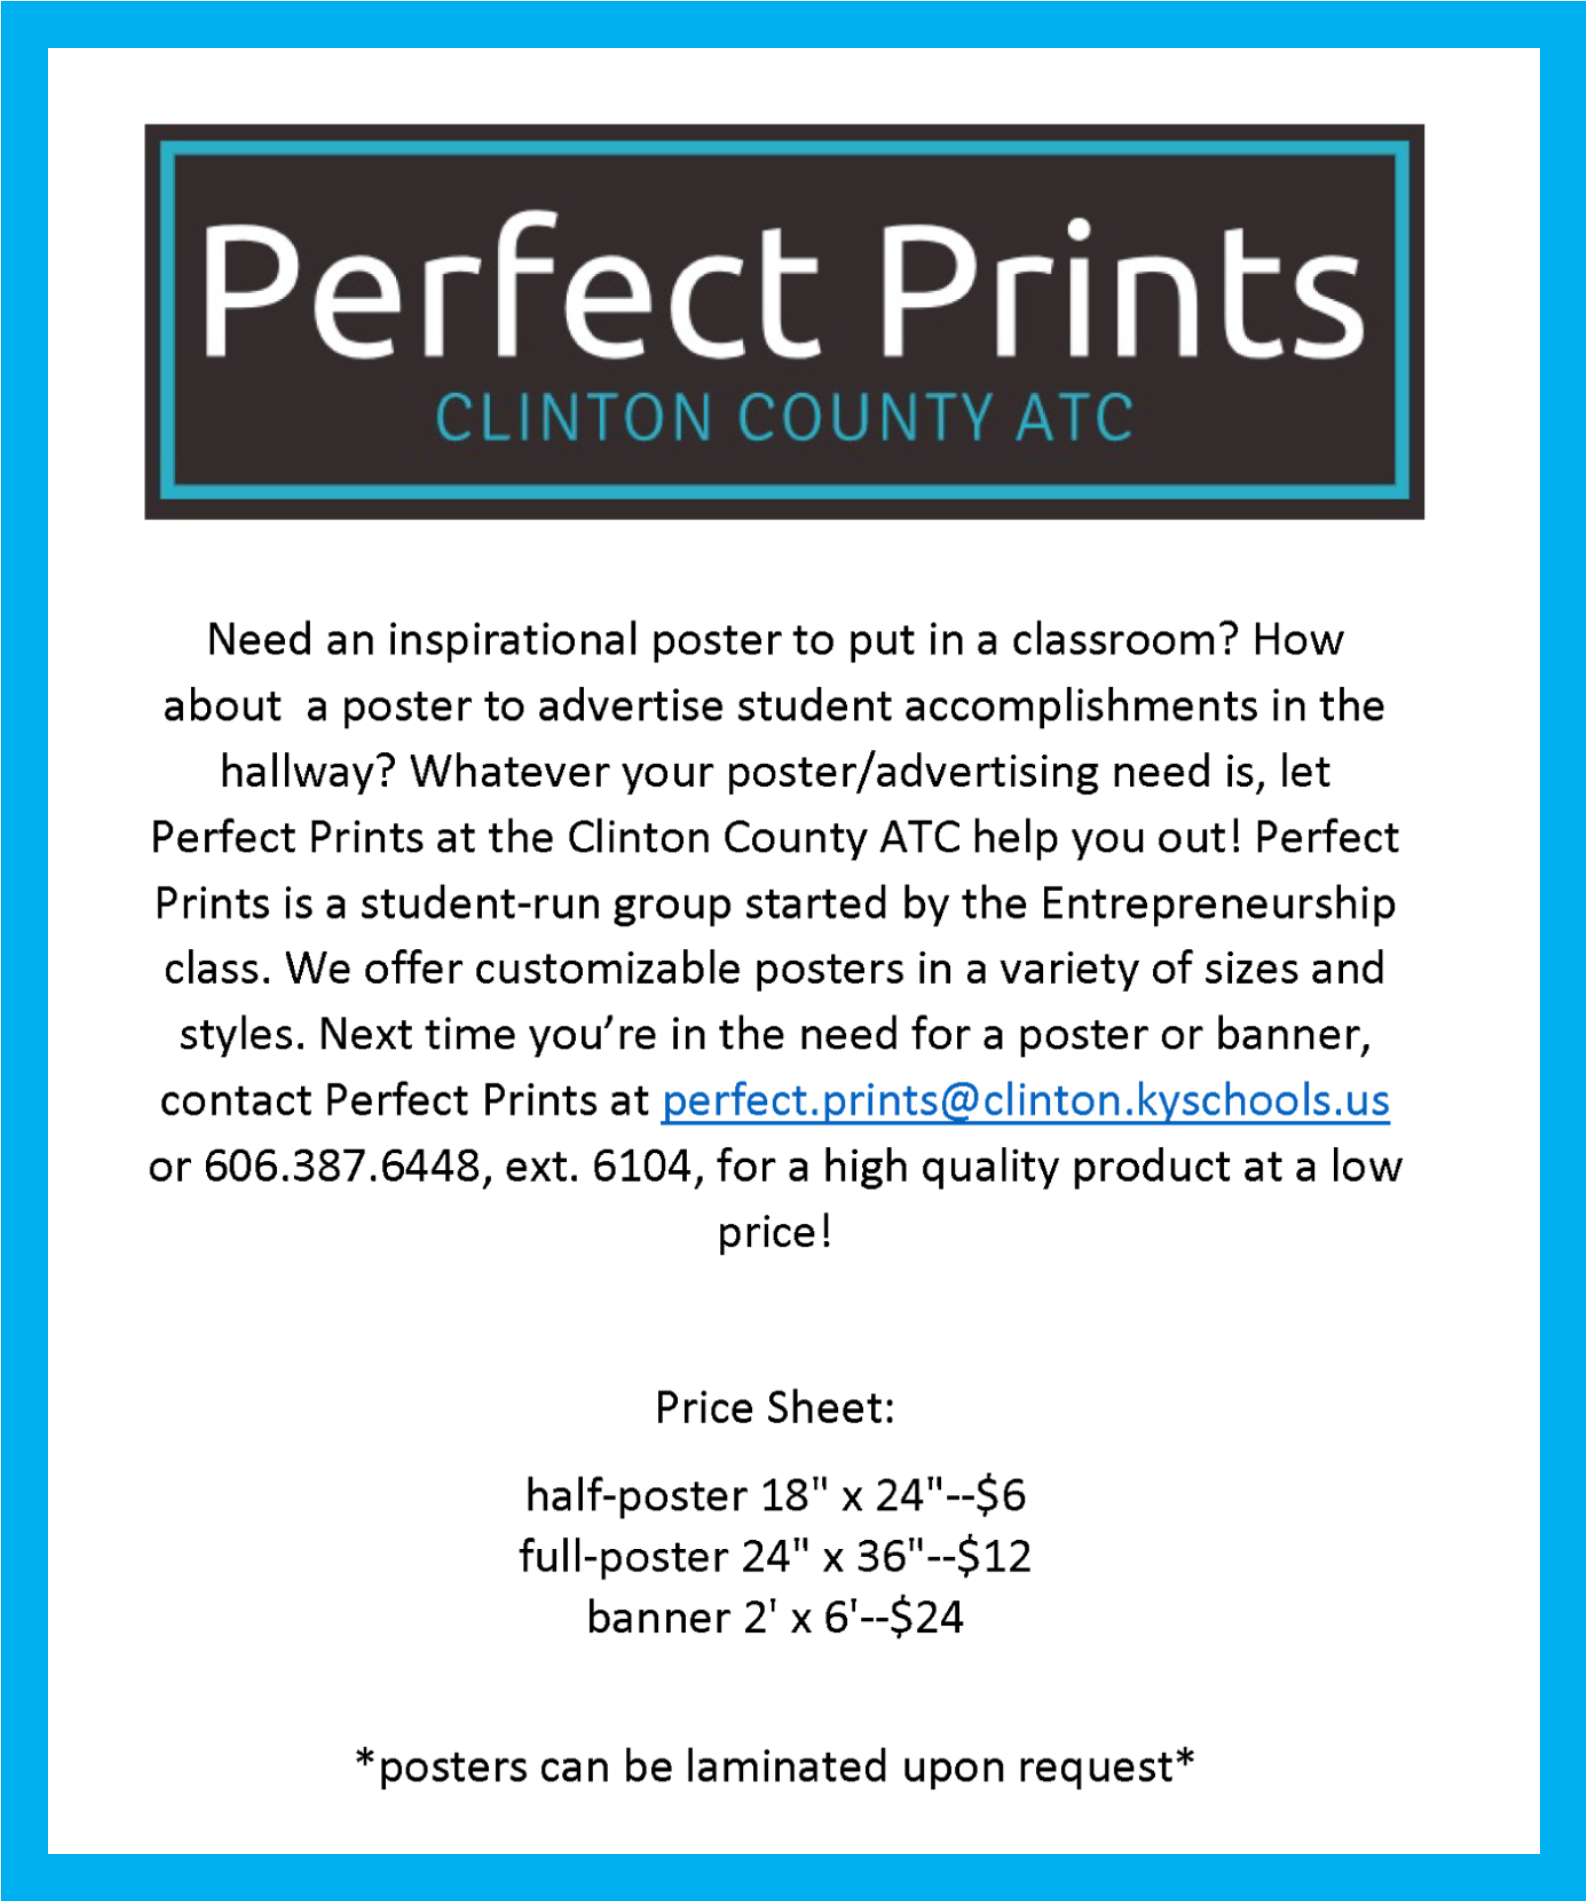 Perfect Prints is a NEW student-led business formed by the entrepreneurship group at the Clinton County Area Technology Center.